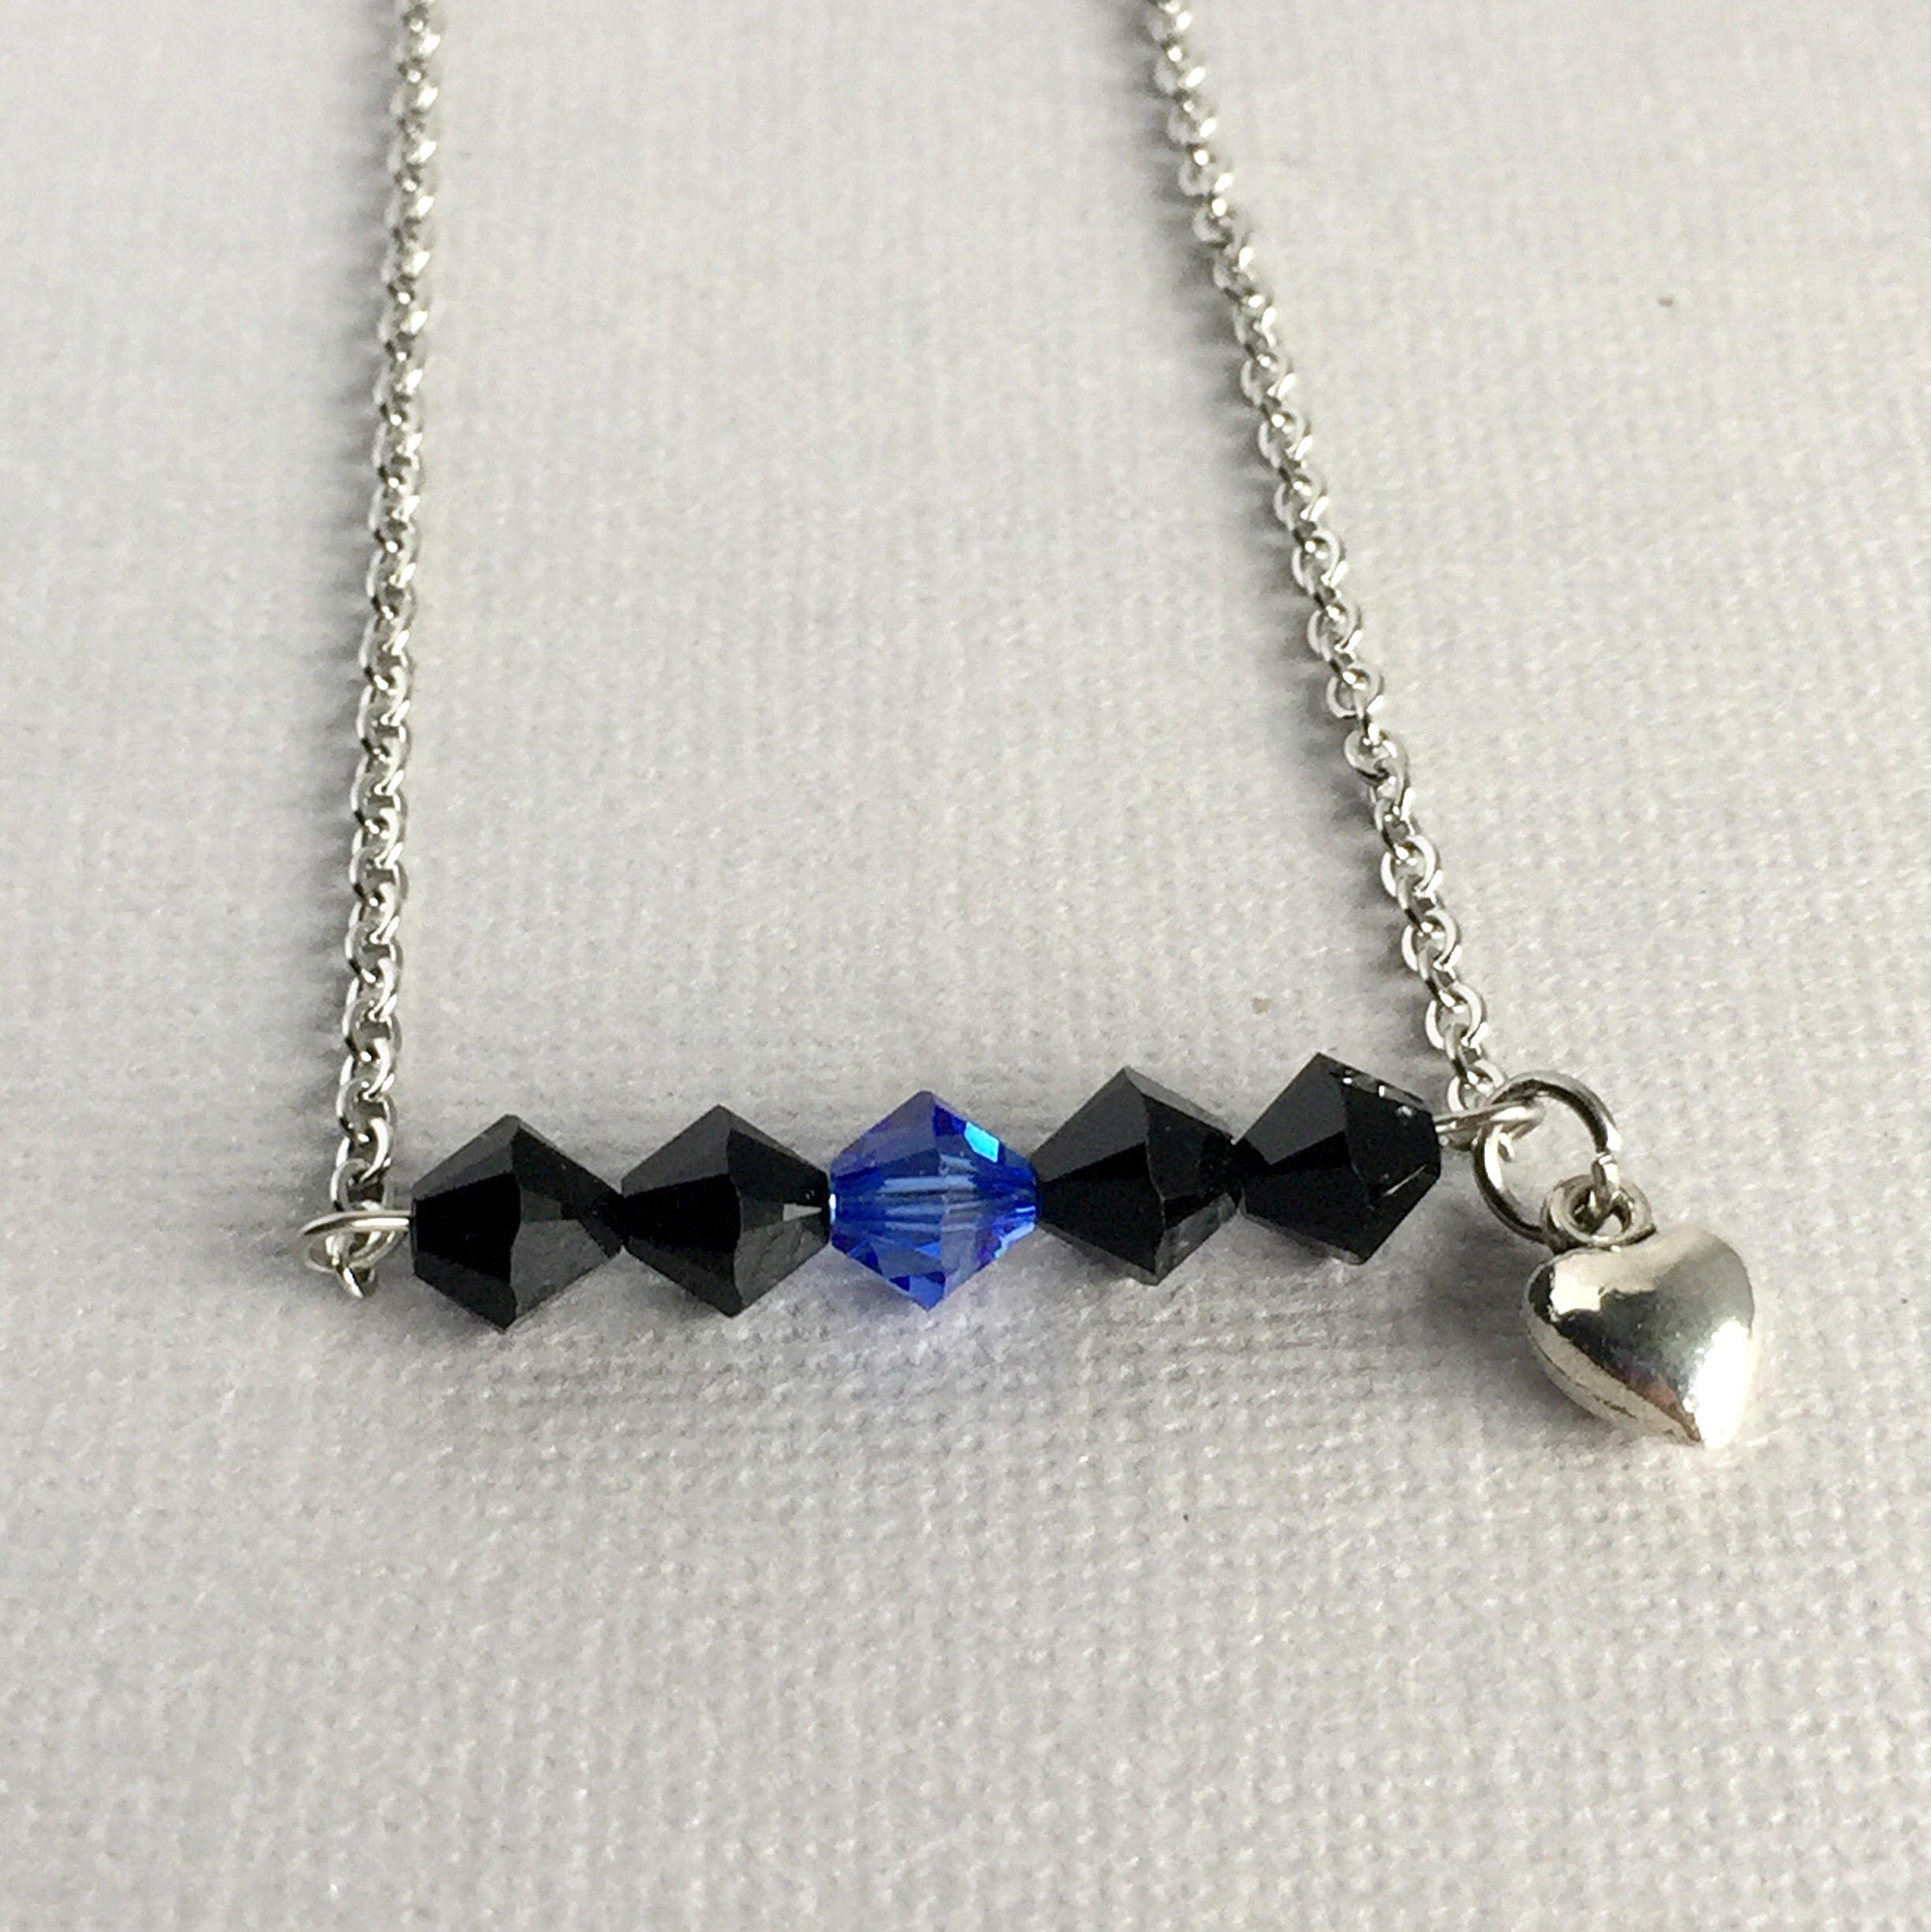 police wife necklace thin blue line police wife jewelry. Black Bedroom Furniture Sets. Home Design Ideas